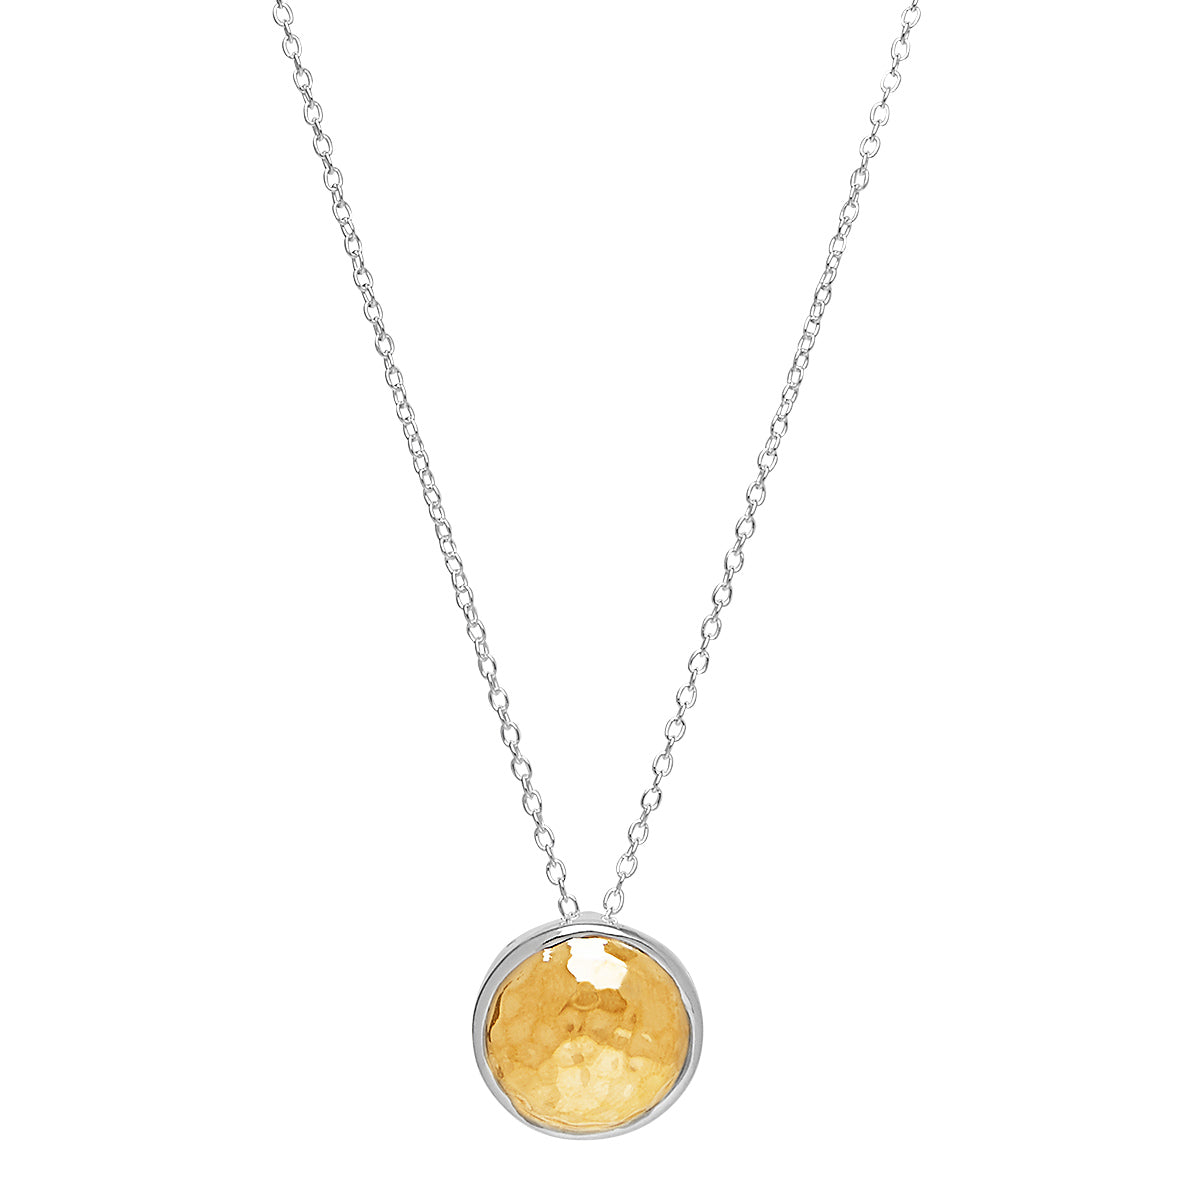 Grand Golden Glow Necklace